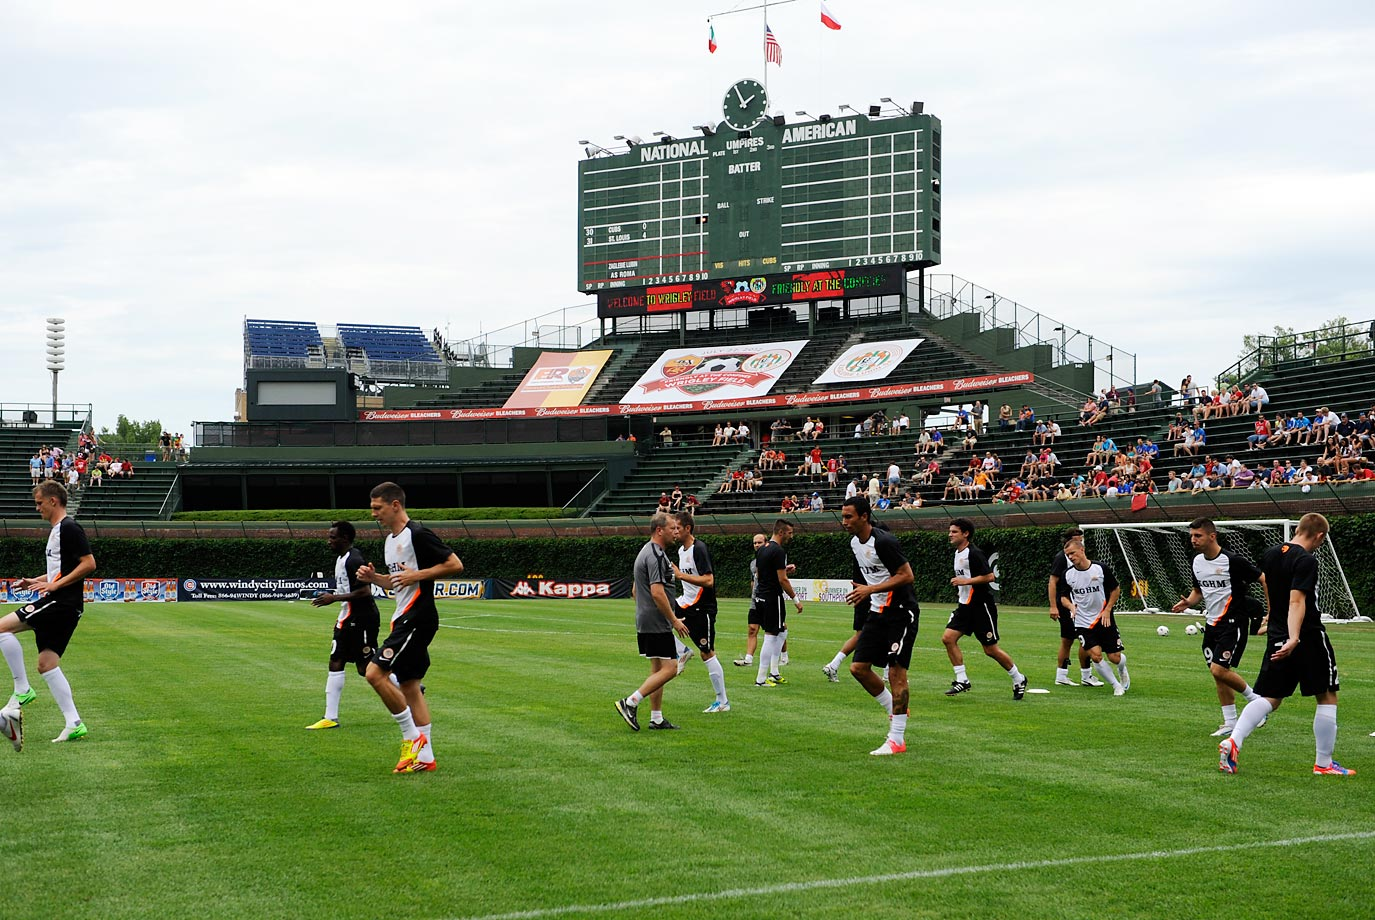 A.C. Roma played Zaglebie Lubin at Wrigley Field on July 22, 1012.